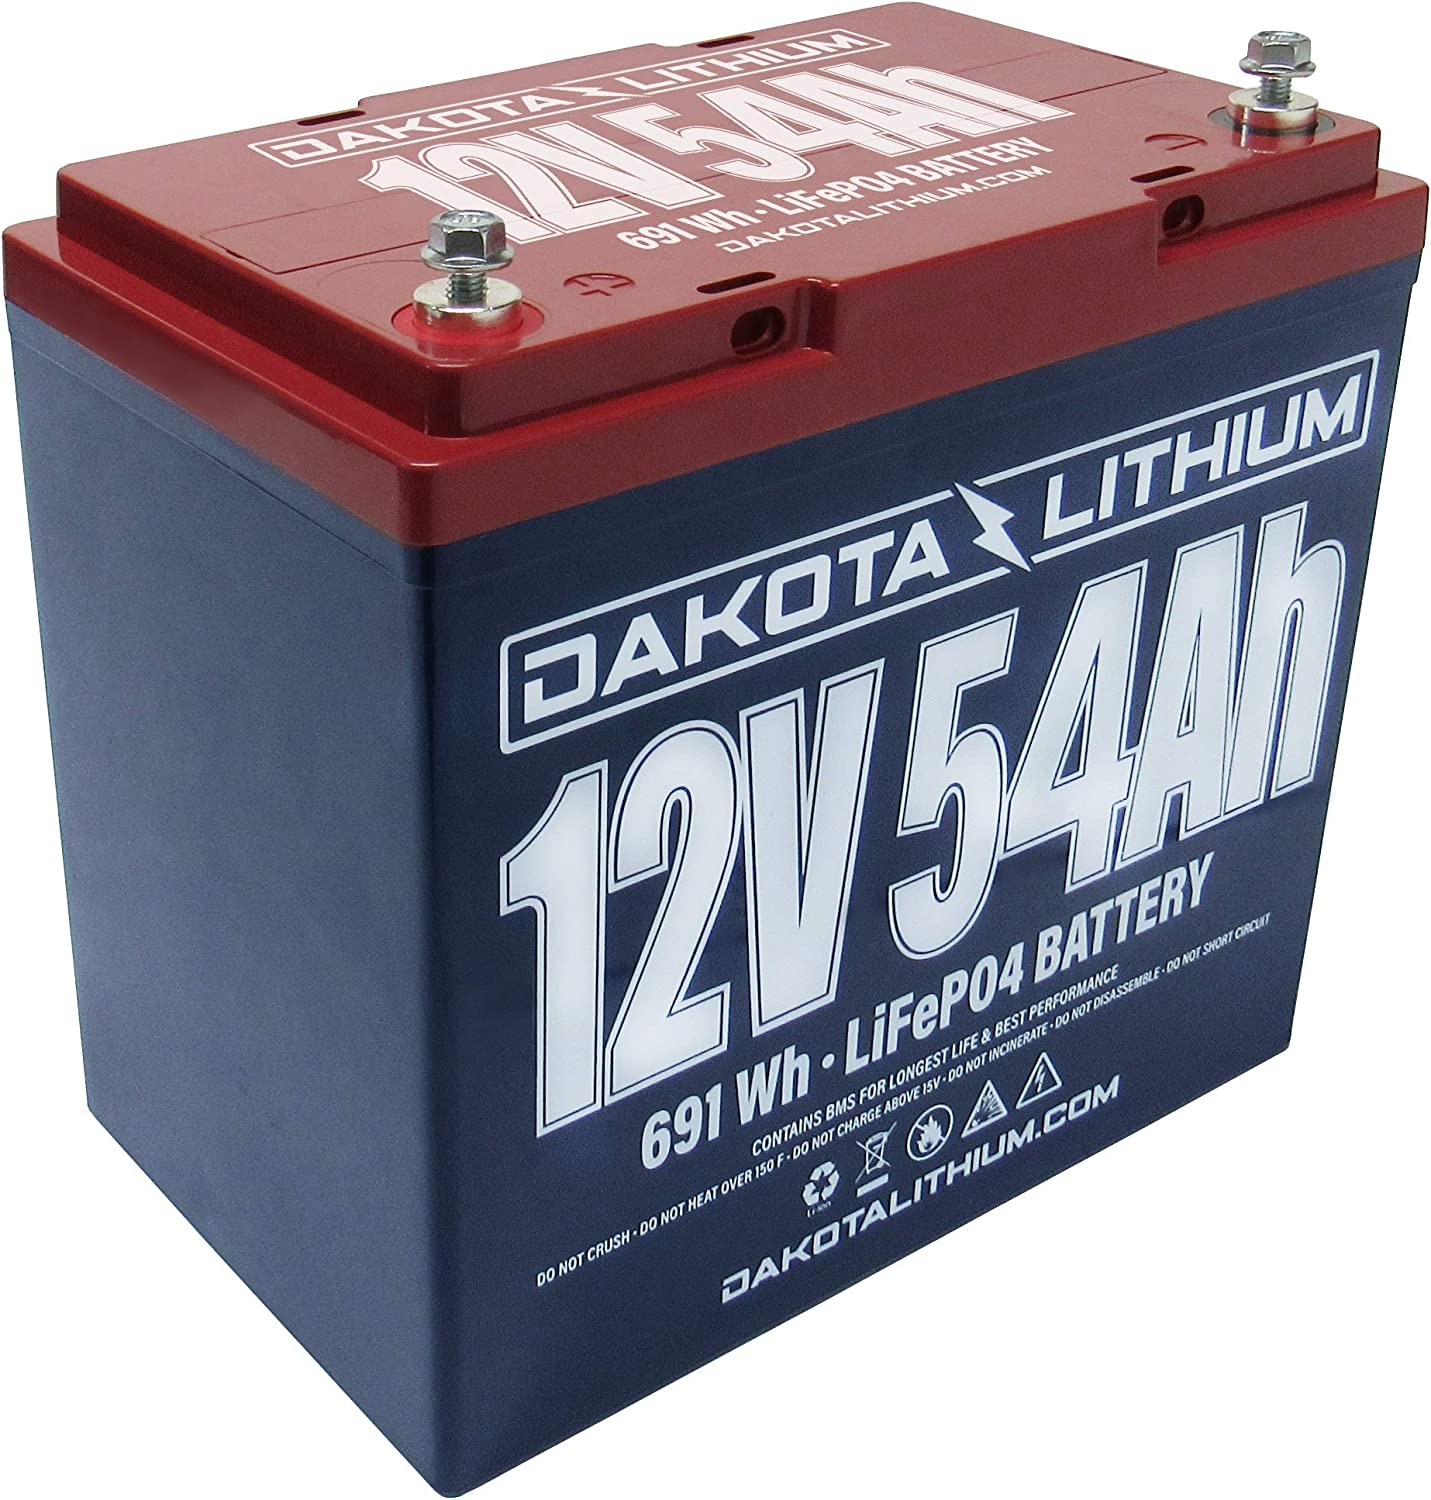 Amazon Com Dakota Lithium 12v 54ah Lifepo4 11 Year Usa Warranty 2000 Deep Cycle Battery Charger Included Sports Outdoors